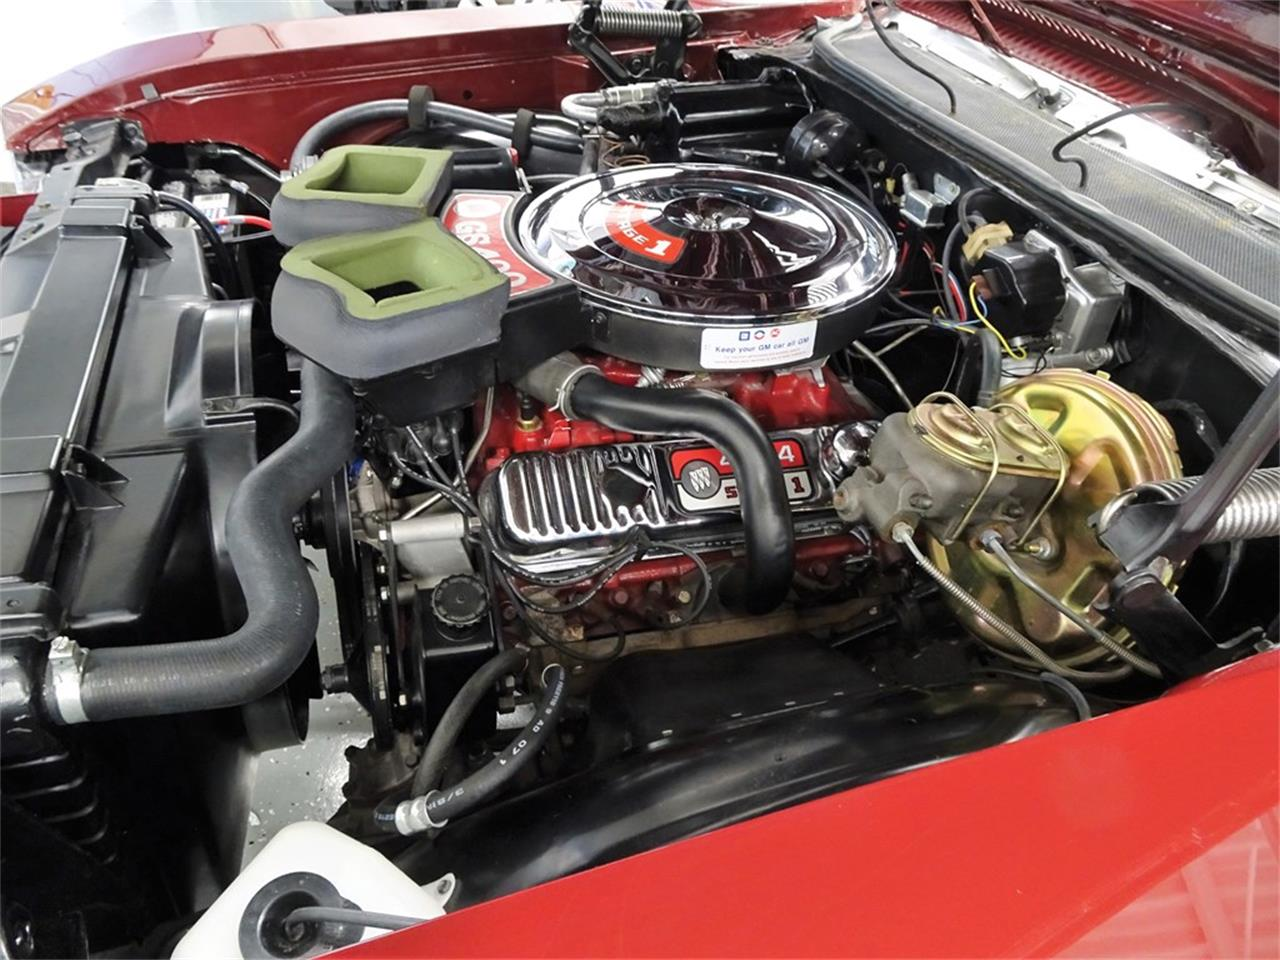 1969 Buick GS400 for sale in Fort Lauderdale, FL – photo 10